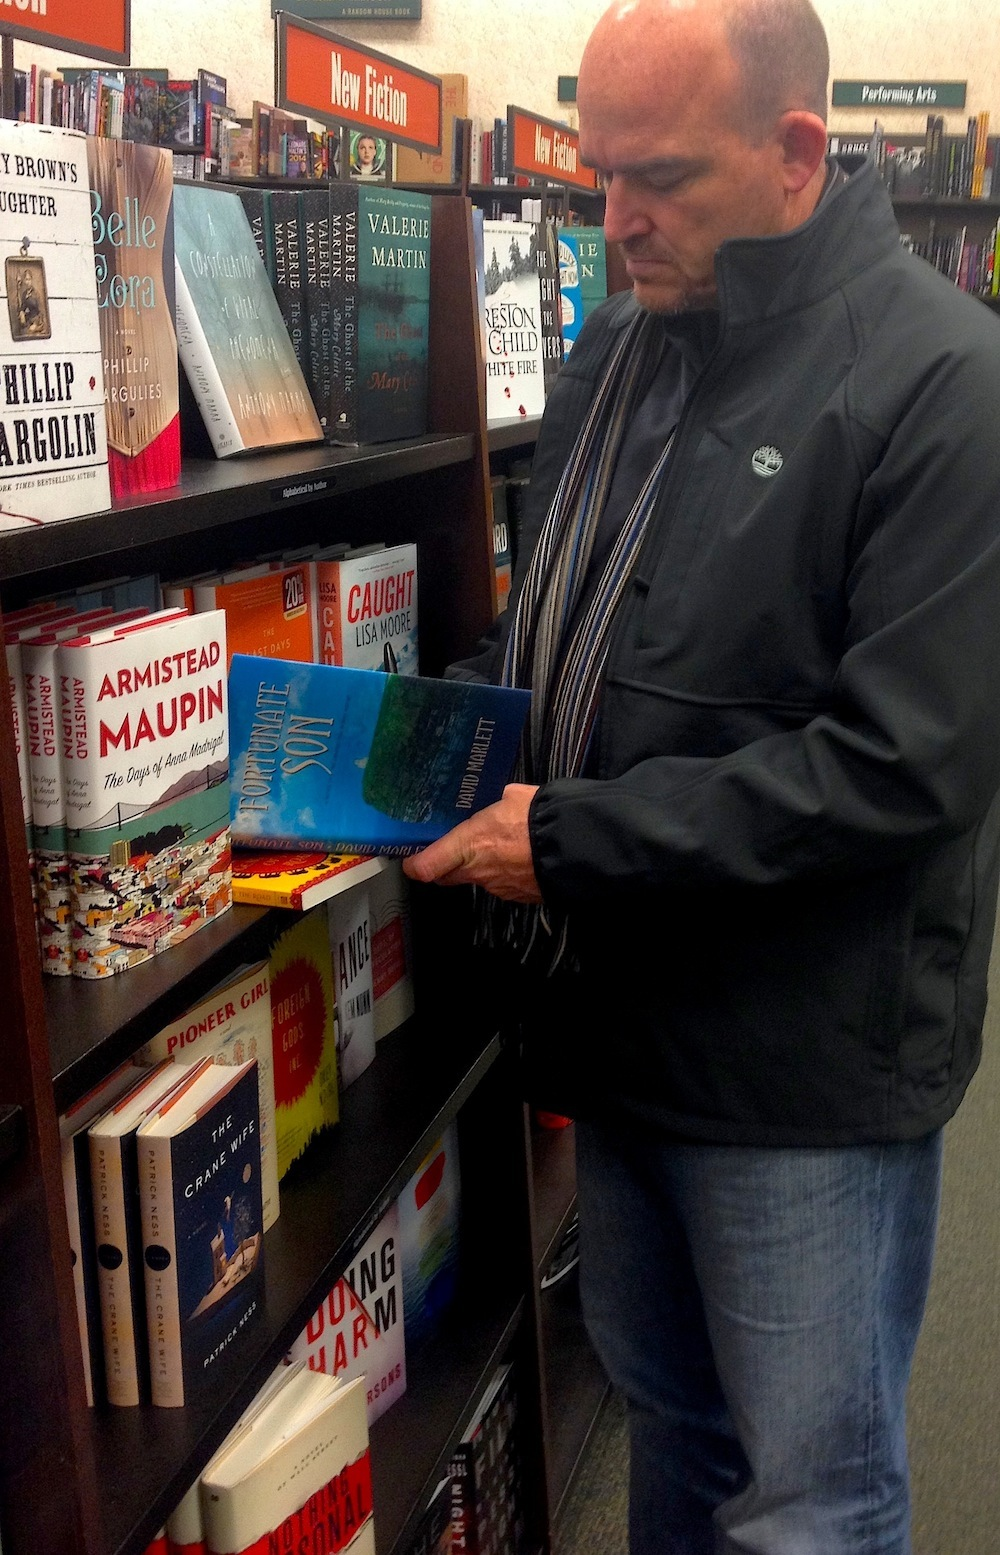 David Marlett signing copies of FORTUNATE SON at a Barnes & Noble